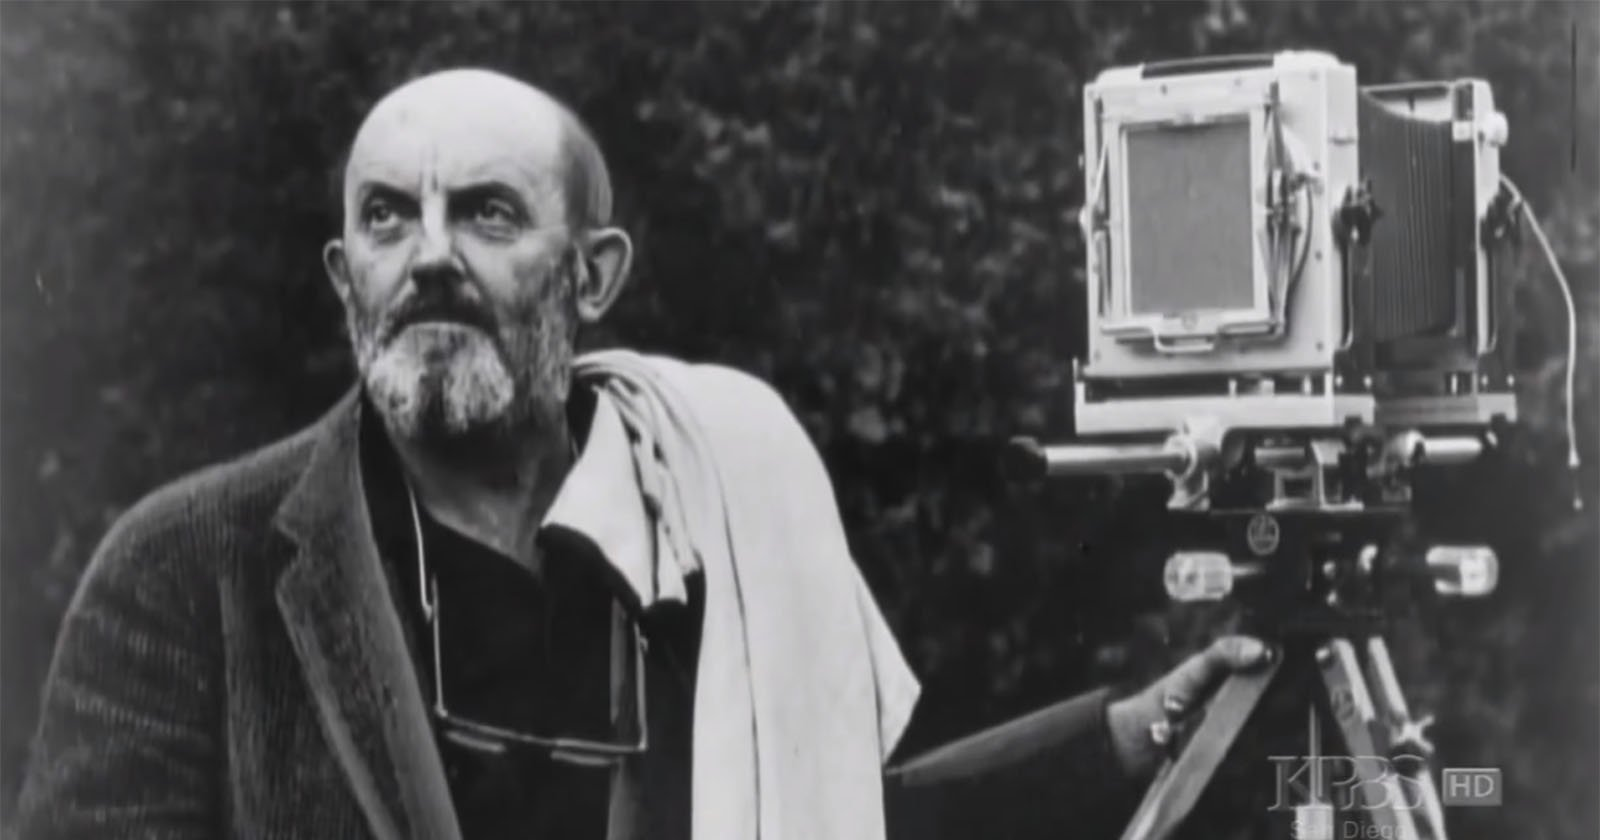 Here's a Great Documentary About the Life and Work of Ansel Adams